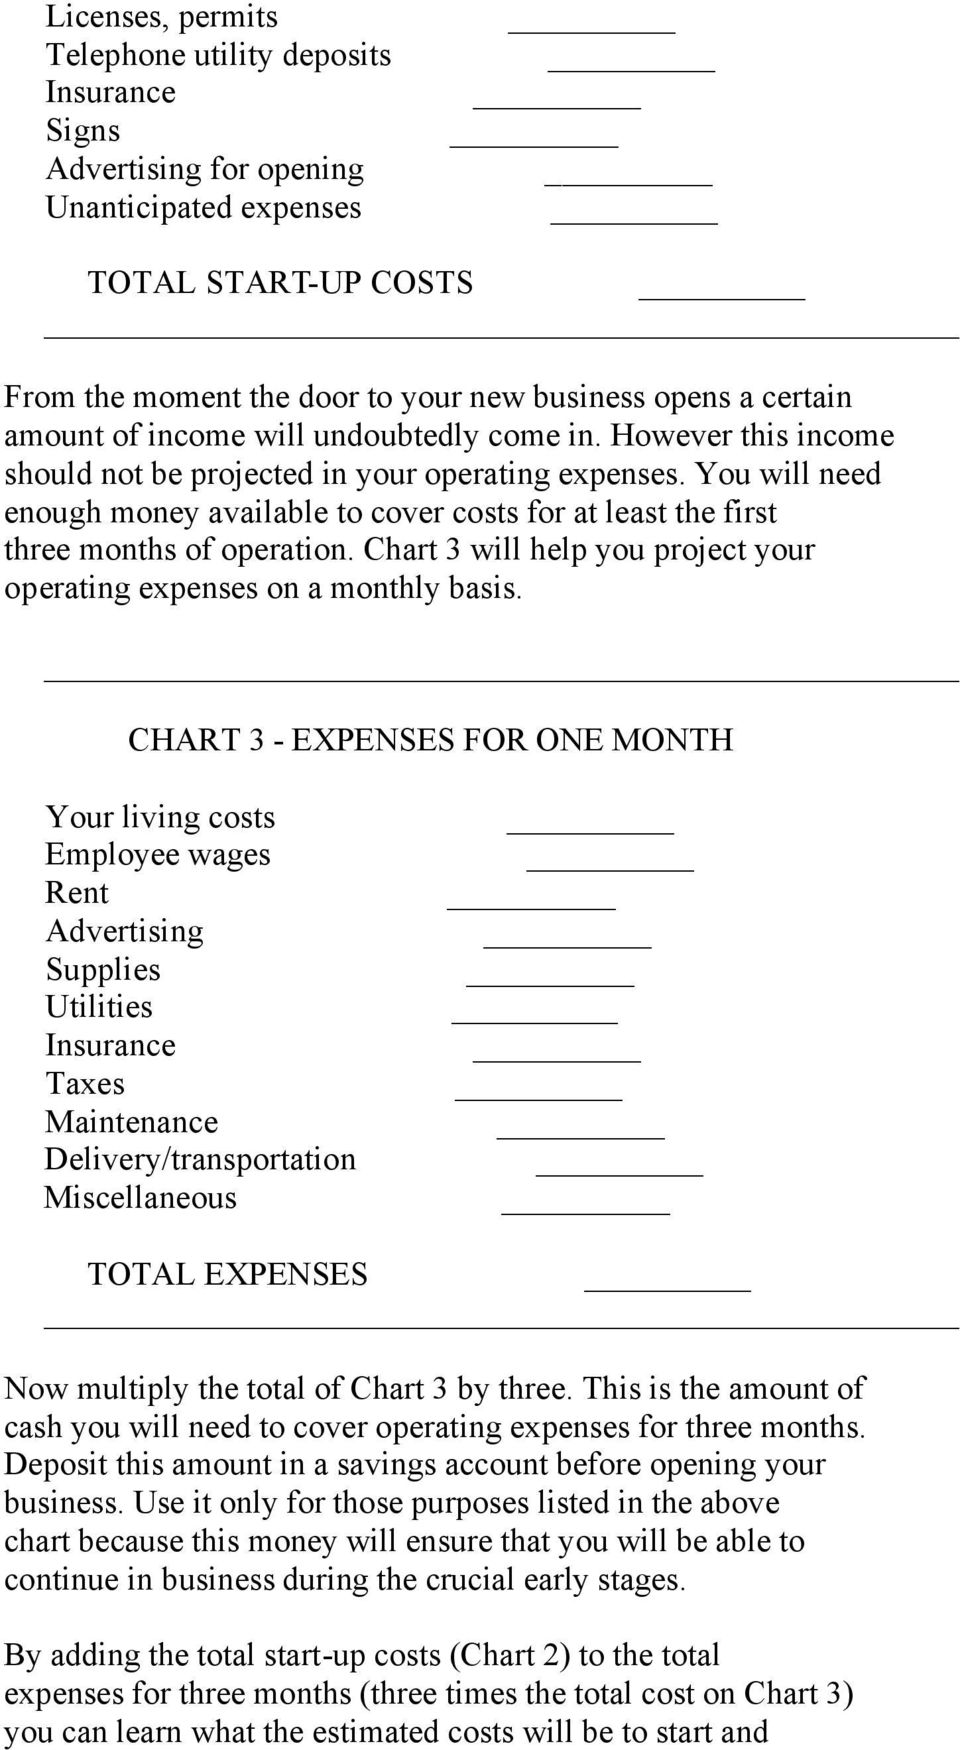 You will need enough money available to cover costs for at least the first three months of operation. Chart 3 will help you project your operating expenses on a monthly basis.